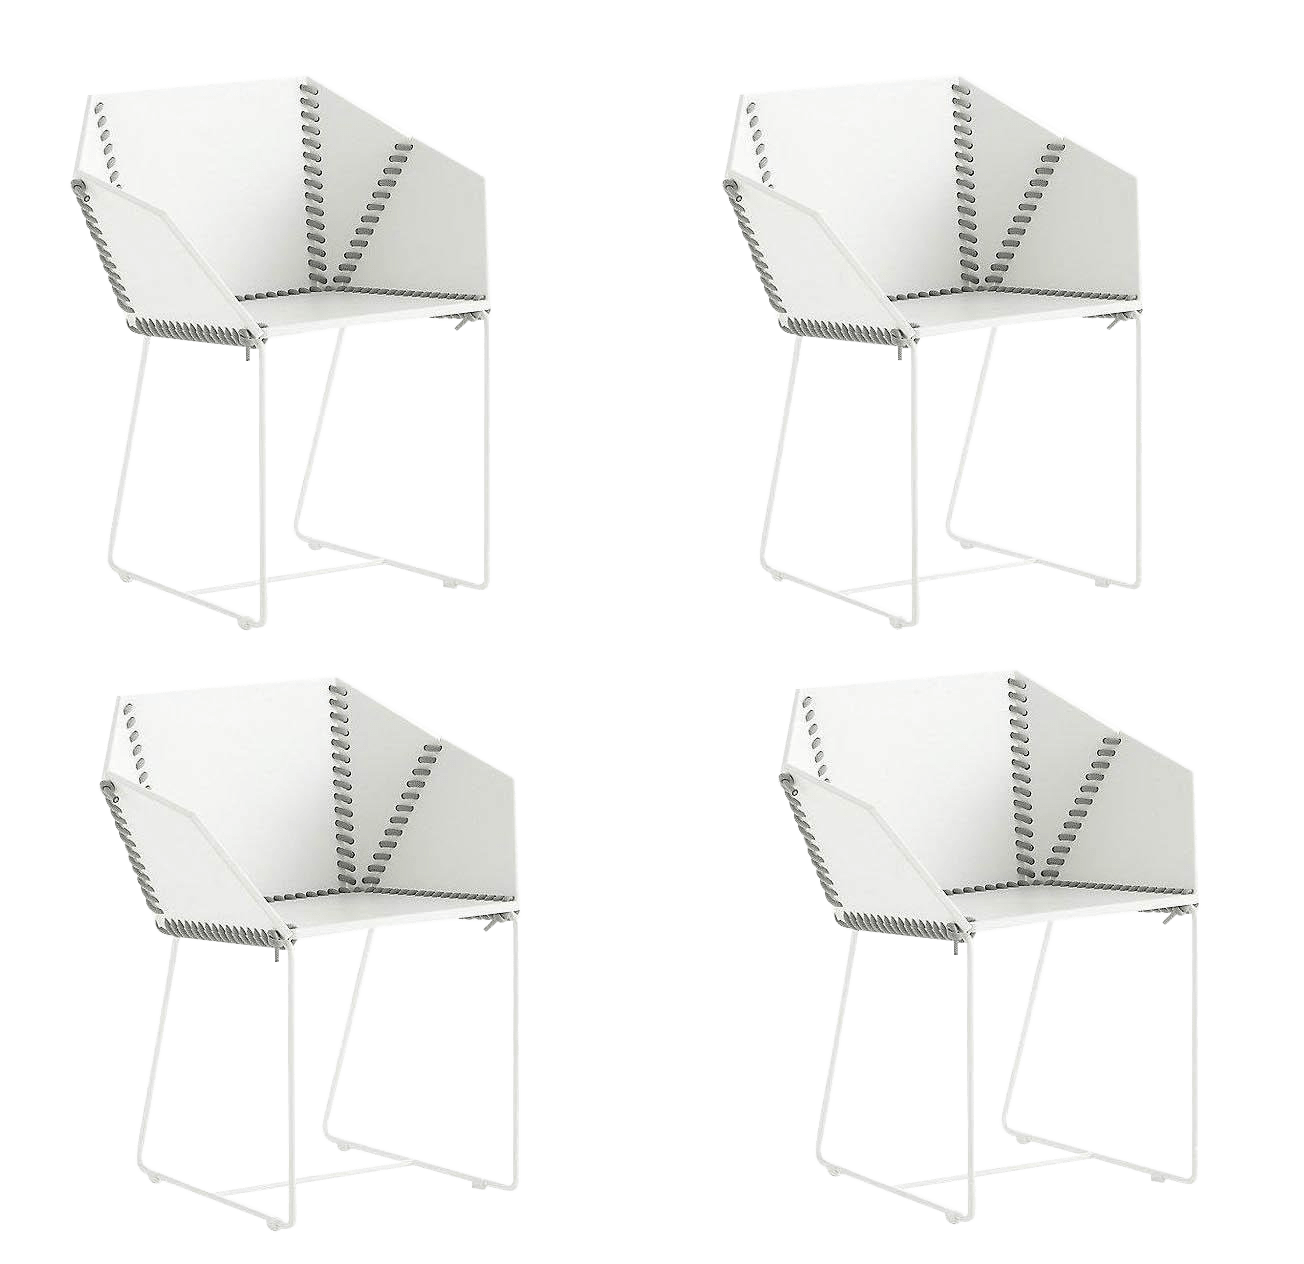 gandia blasco clack chair revolving png baseball stitch marine grade patio dining chairs set of 4 for sale